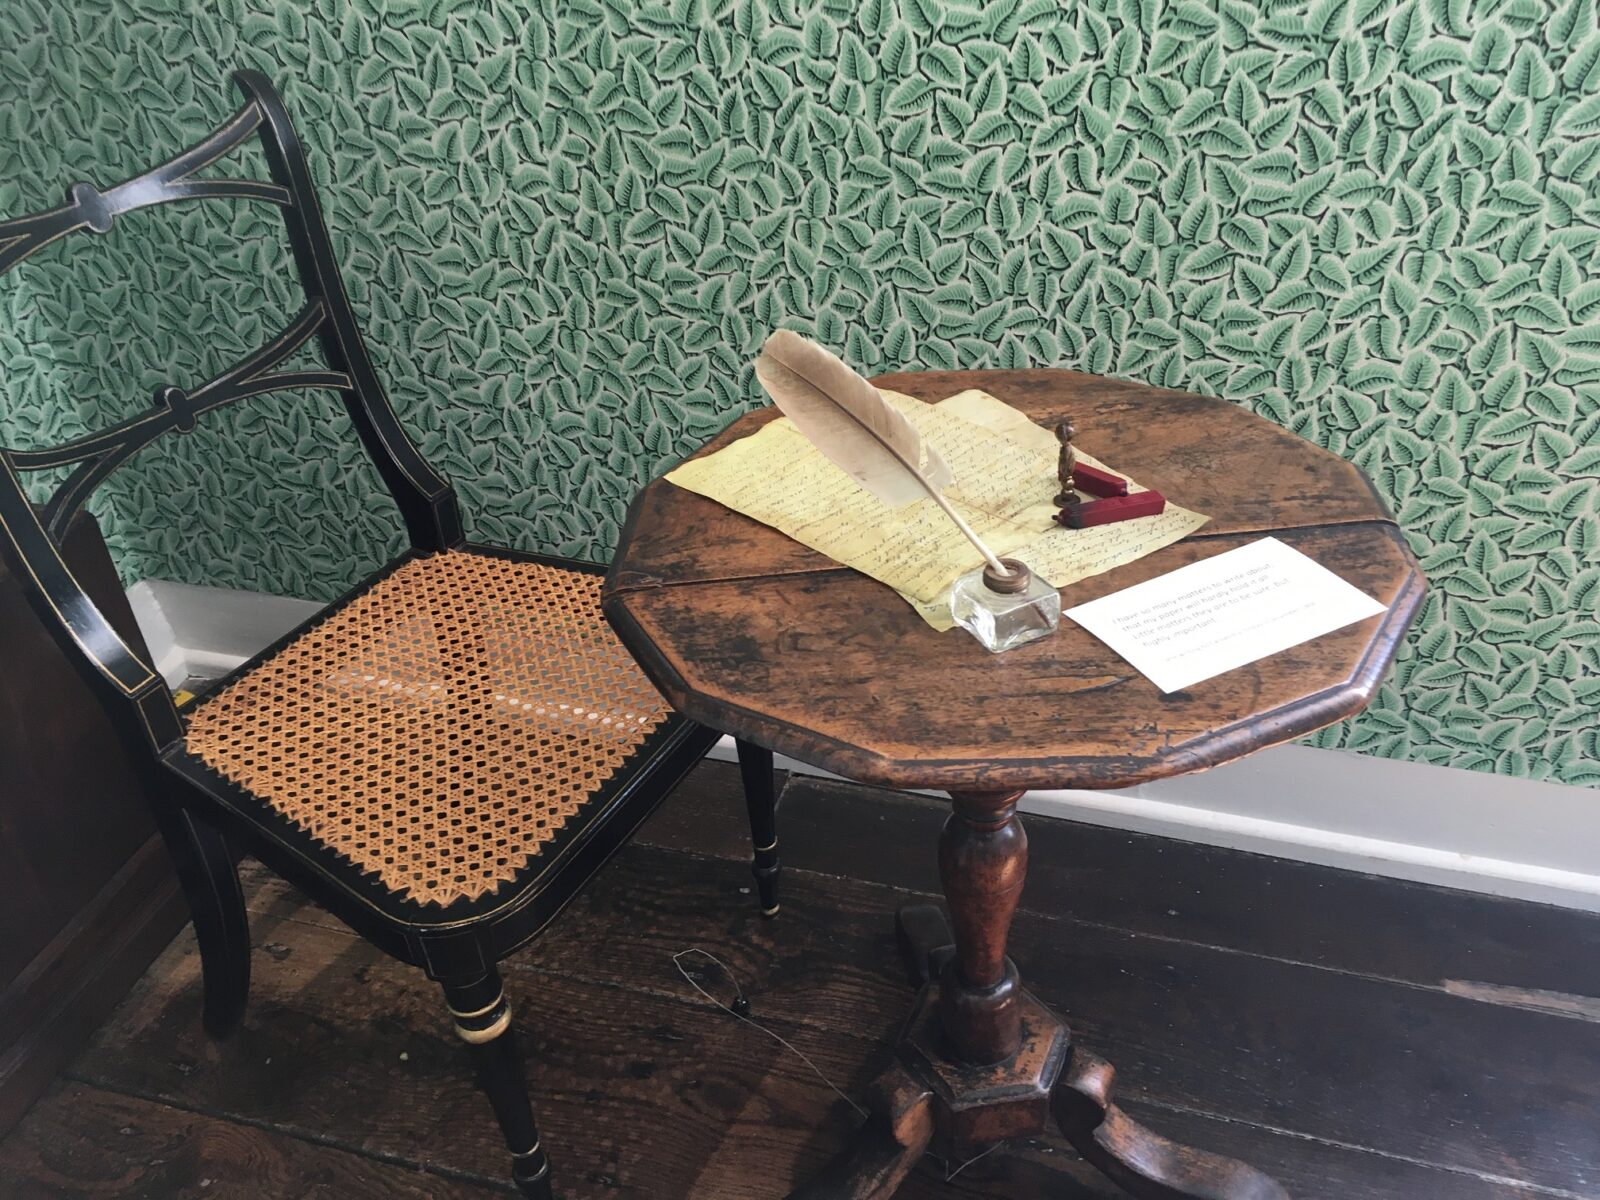 Jane Austen's small wooden writing table, with a facsimile letter and feather quill